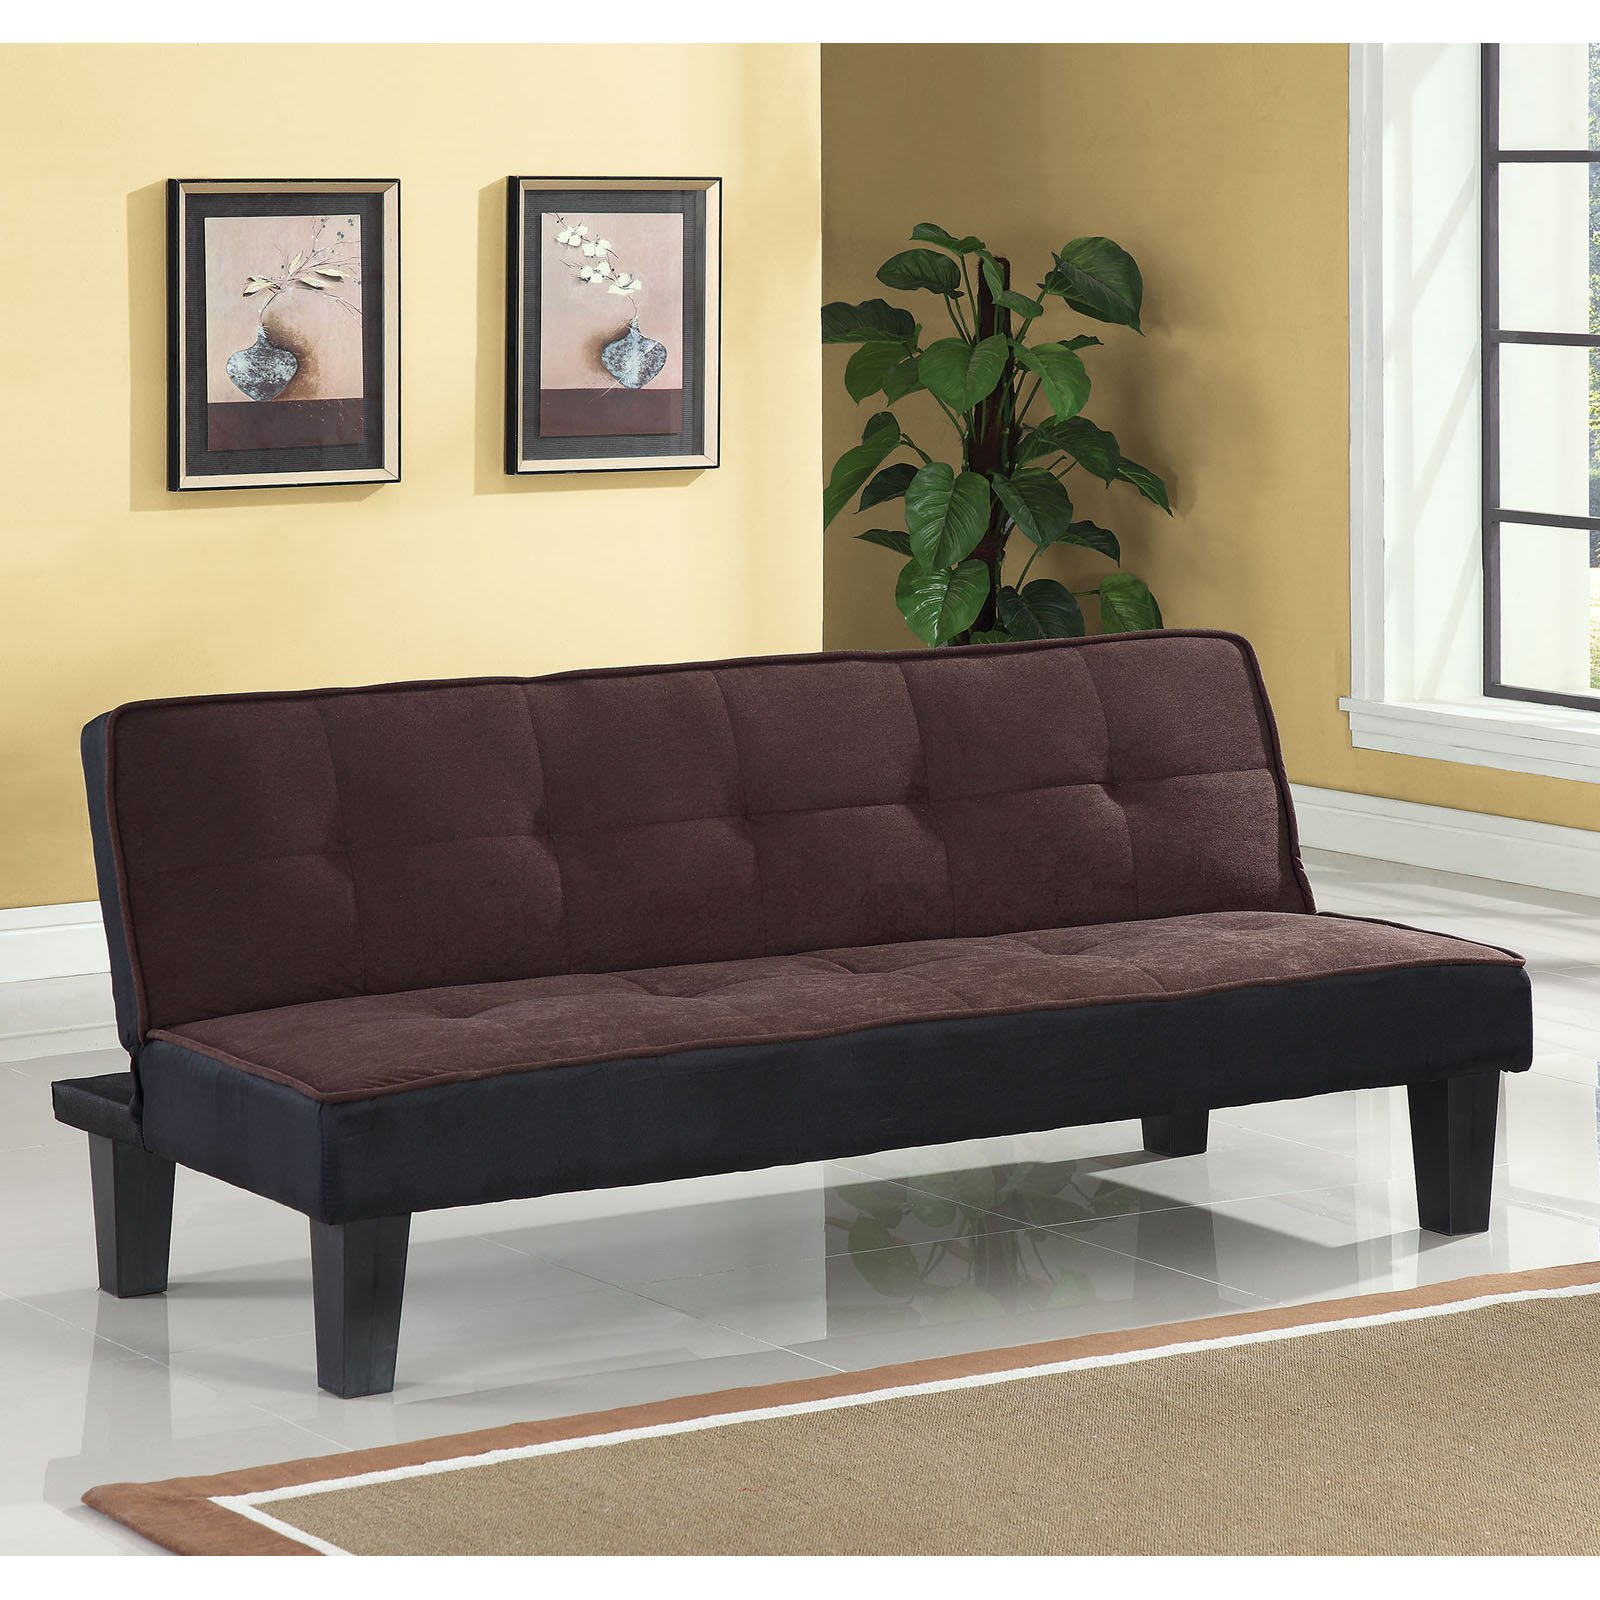 Acme Furniture Hamar Flannel Futon Sofa, Multiple Colors